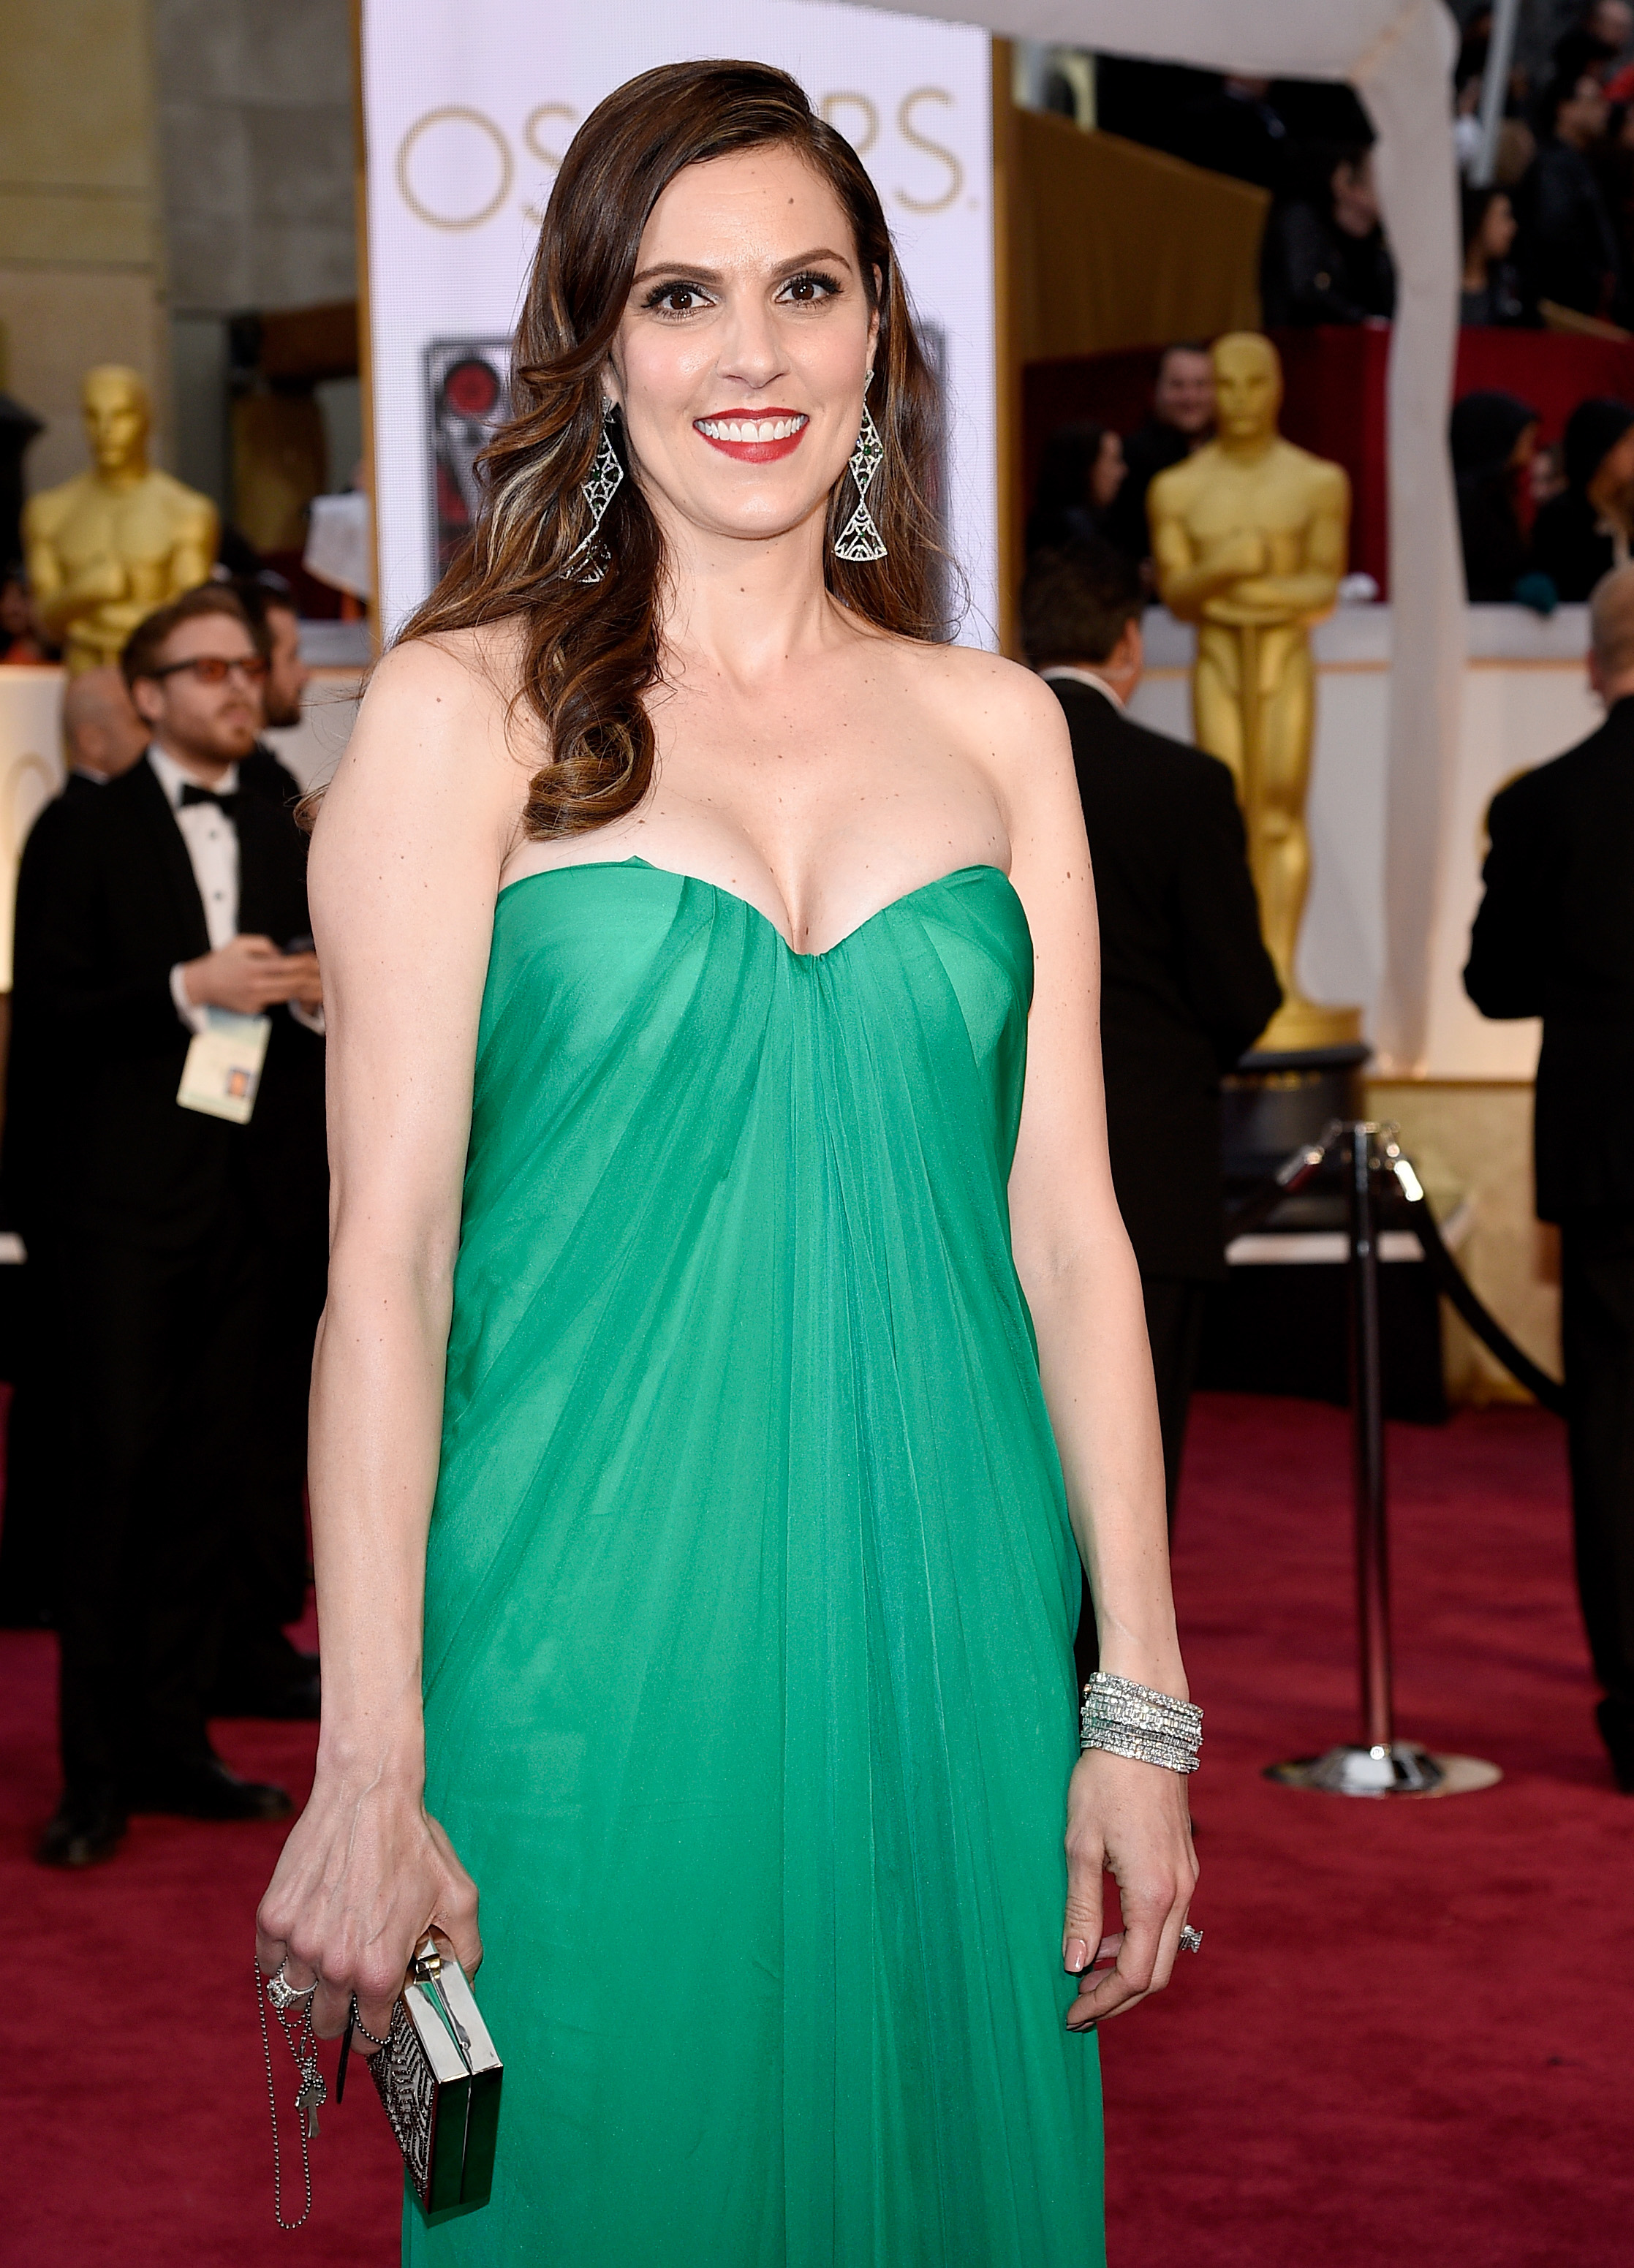 HOLLYWOOD, CA - FEBRUARY 22:  Taya Kyle  attends the 87th Annual Academy Awards at Hollywood & Highland Center on February 22, 2015 in Hollywood, California